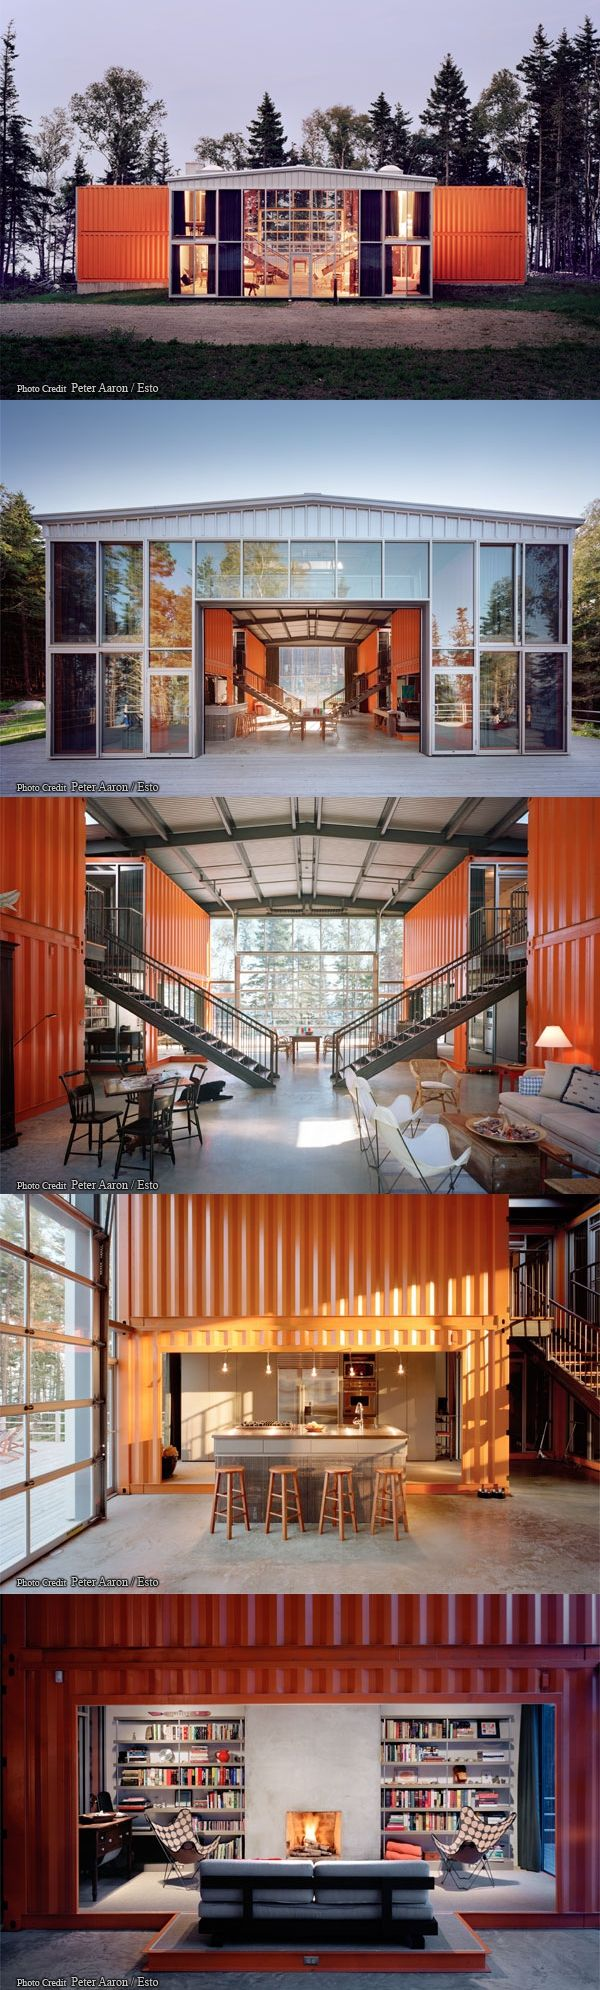 container house by adam kalkin (How To Build A Shed On Concrete)